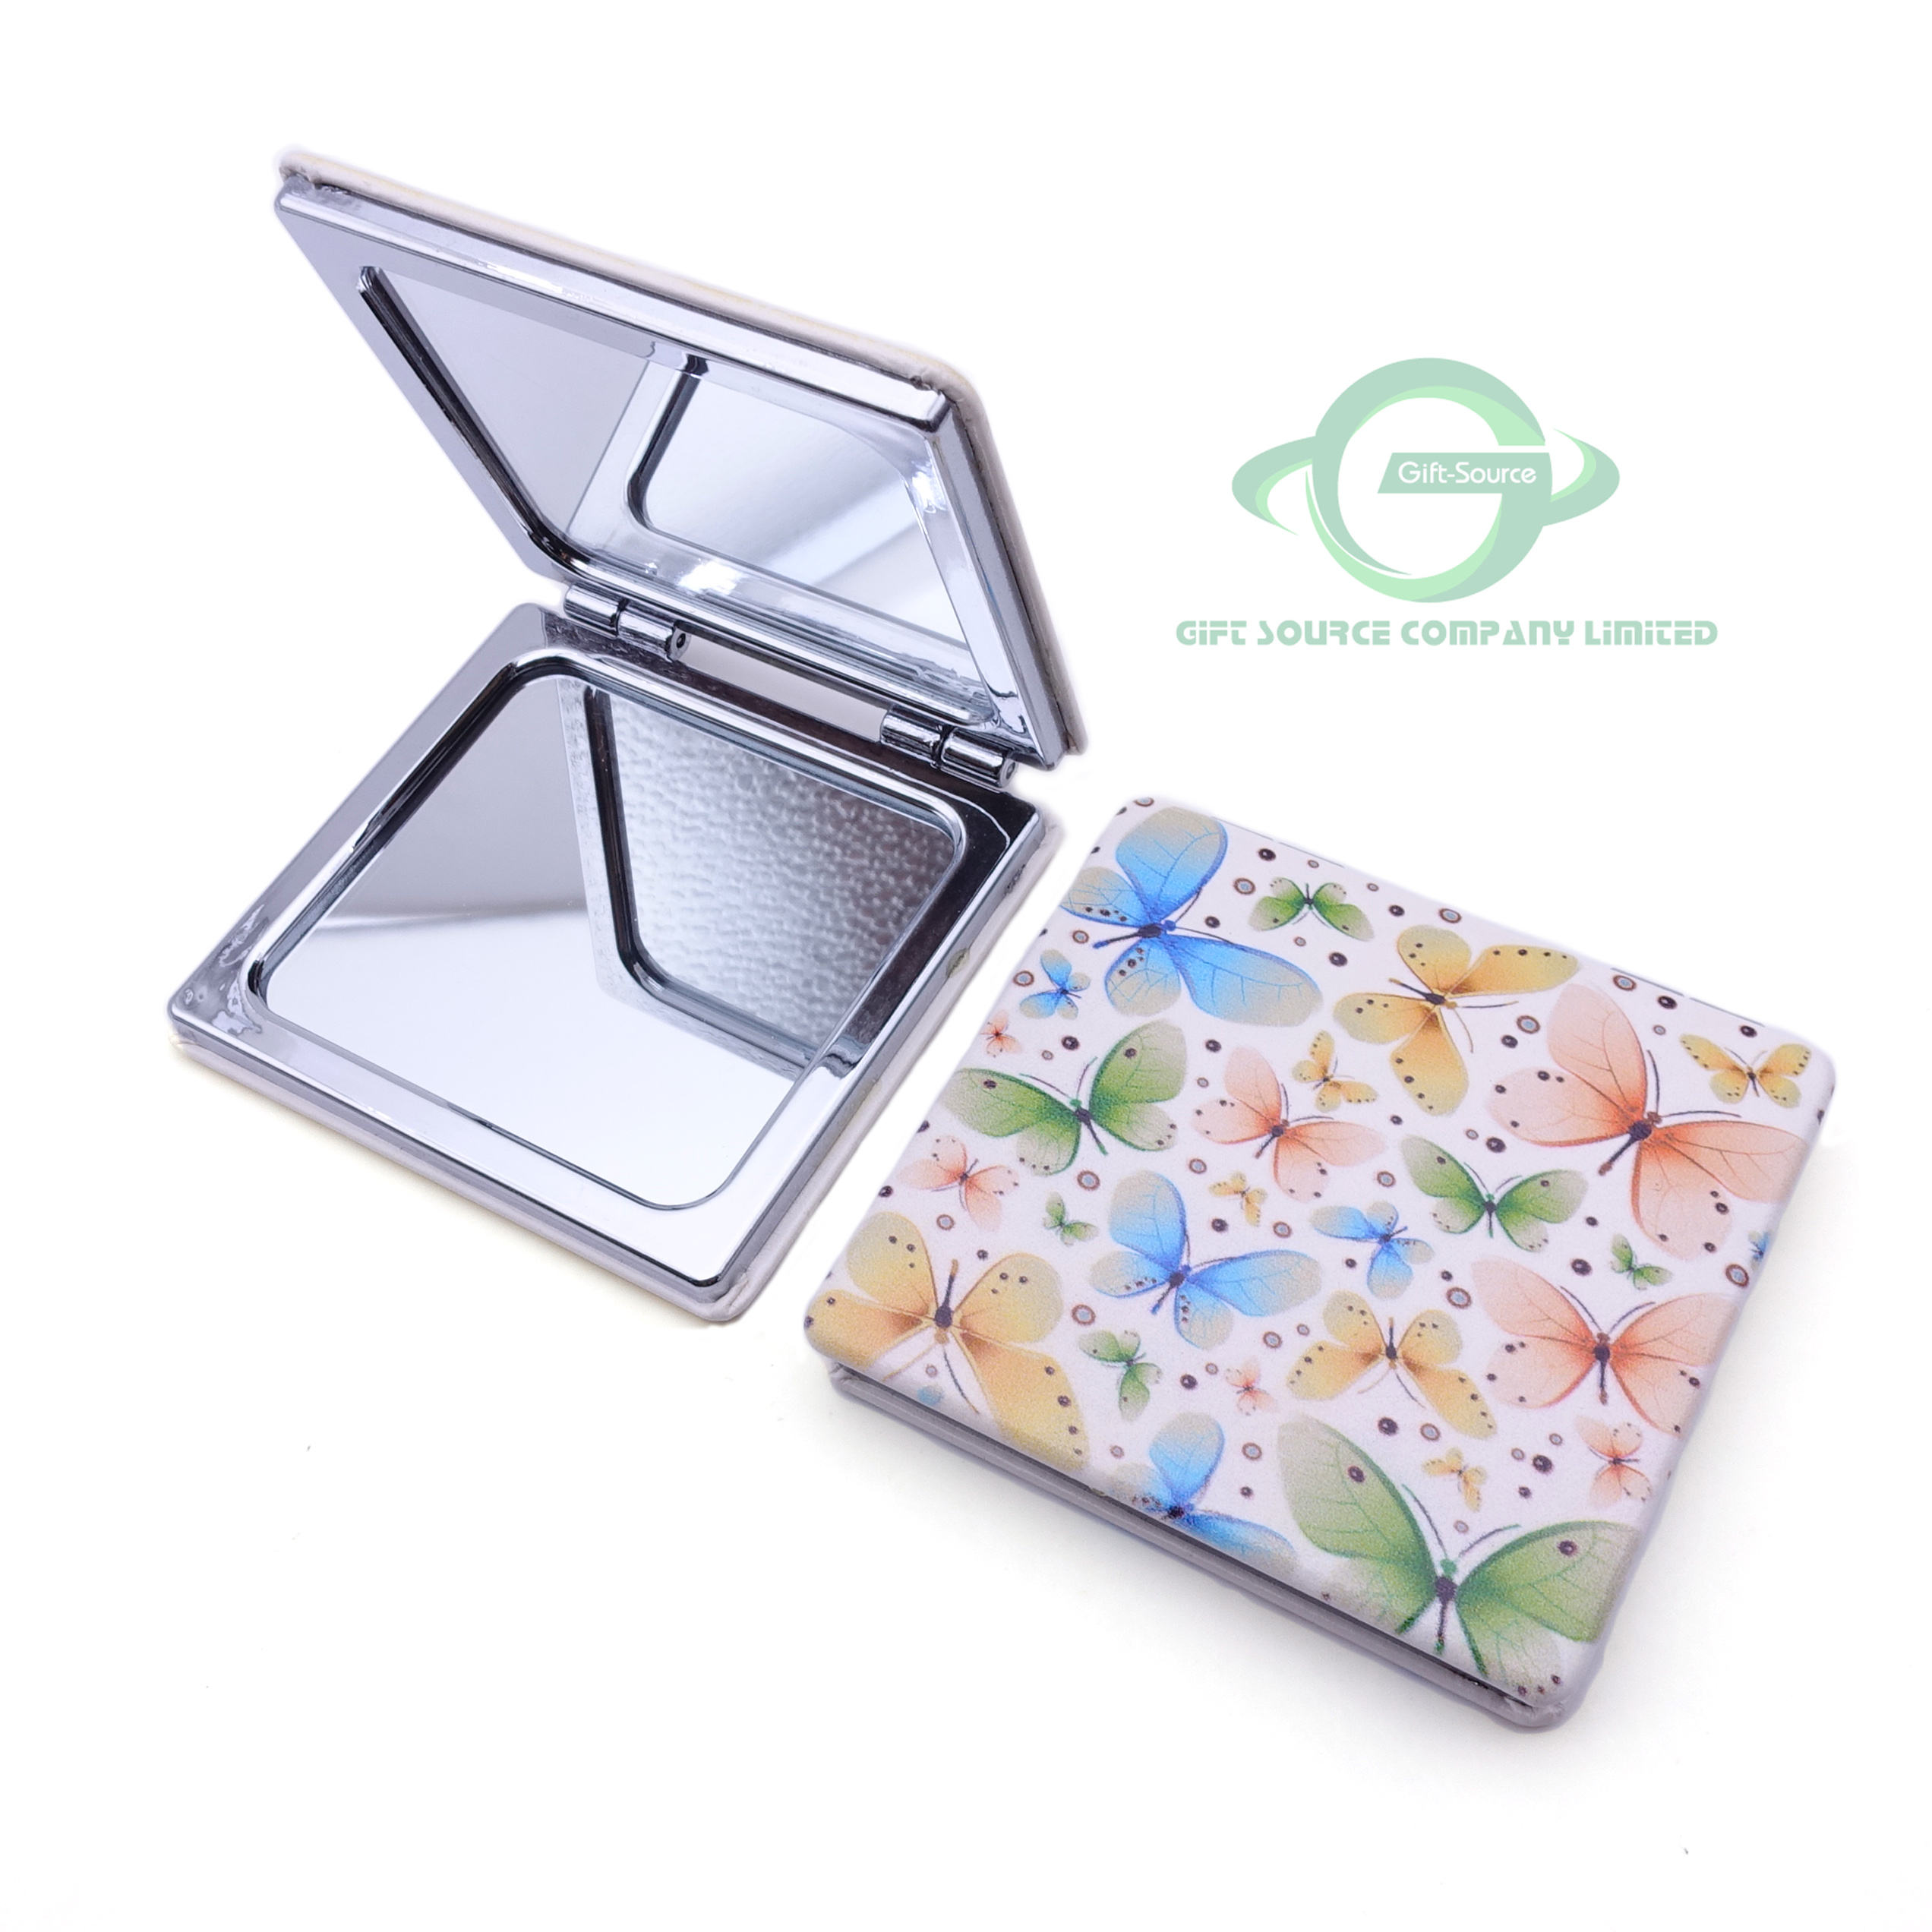 2020 Newest hot sales sublimation blanks compact mirror with logo/cosmetics mirror/custom hand held vanity mirror with lights